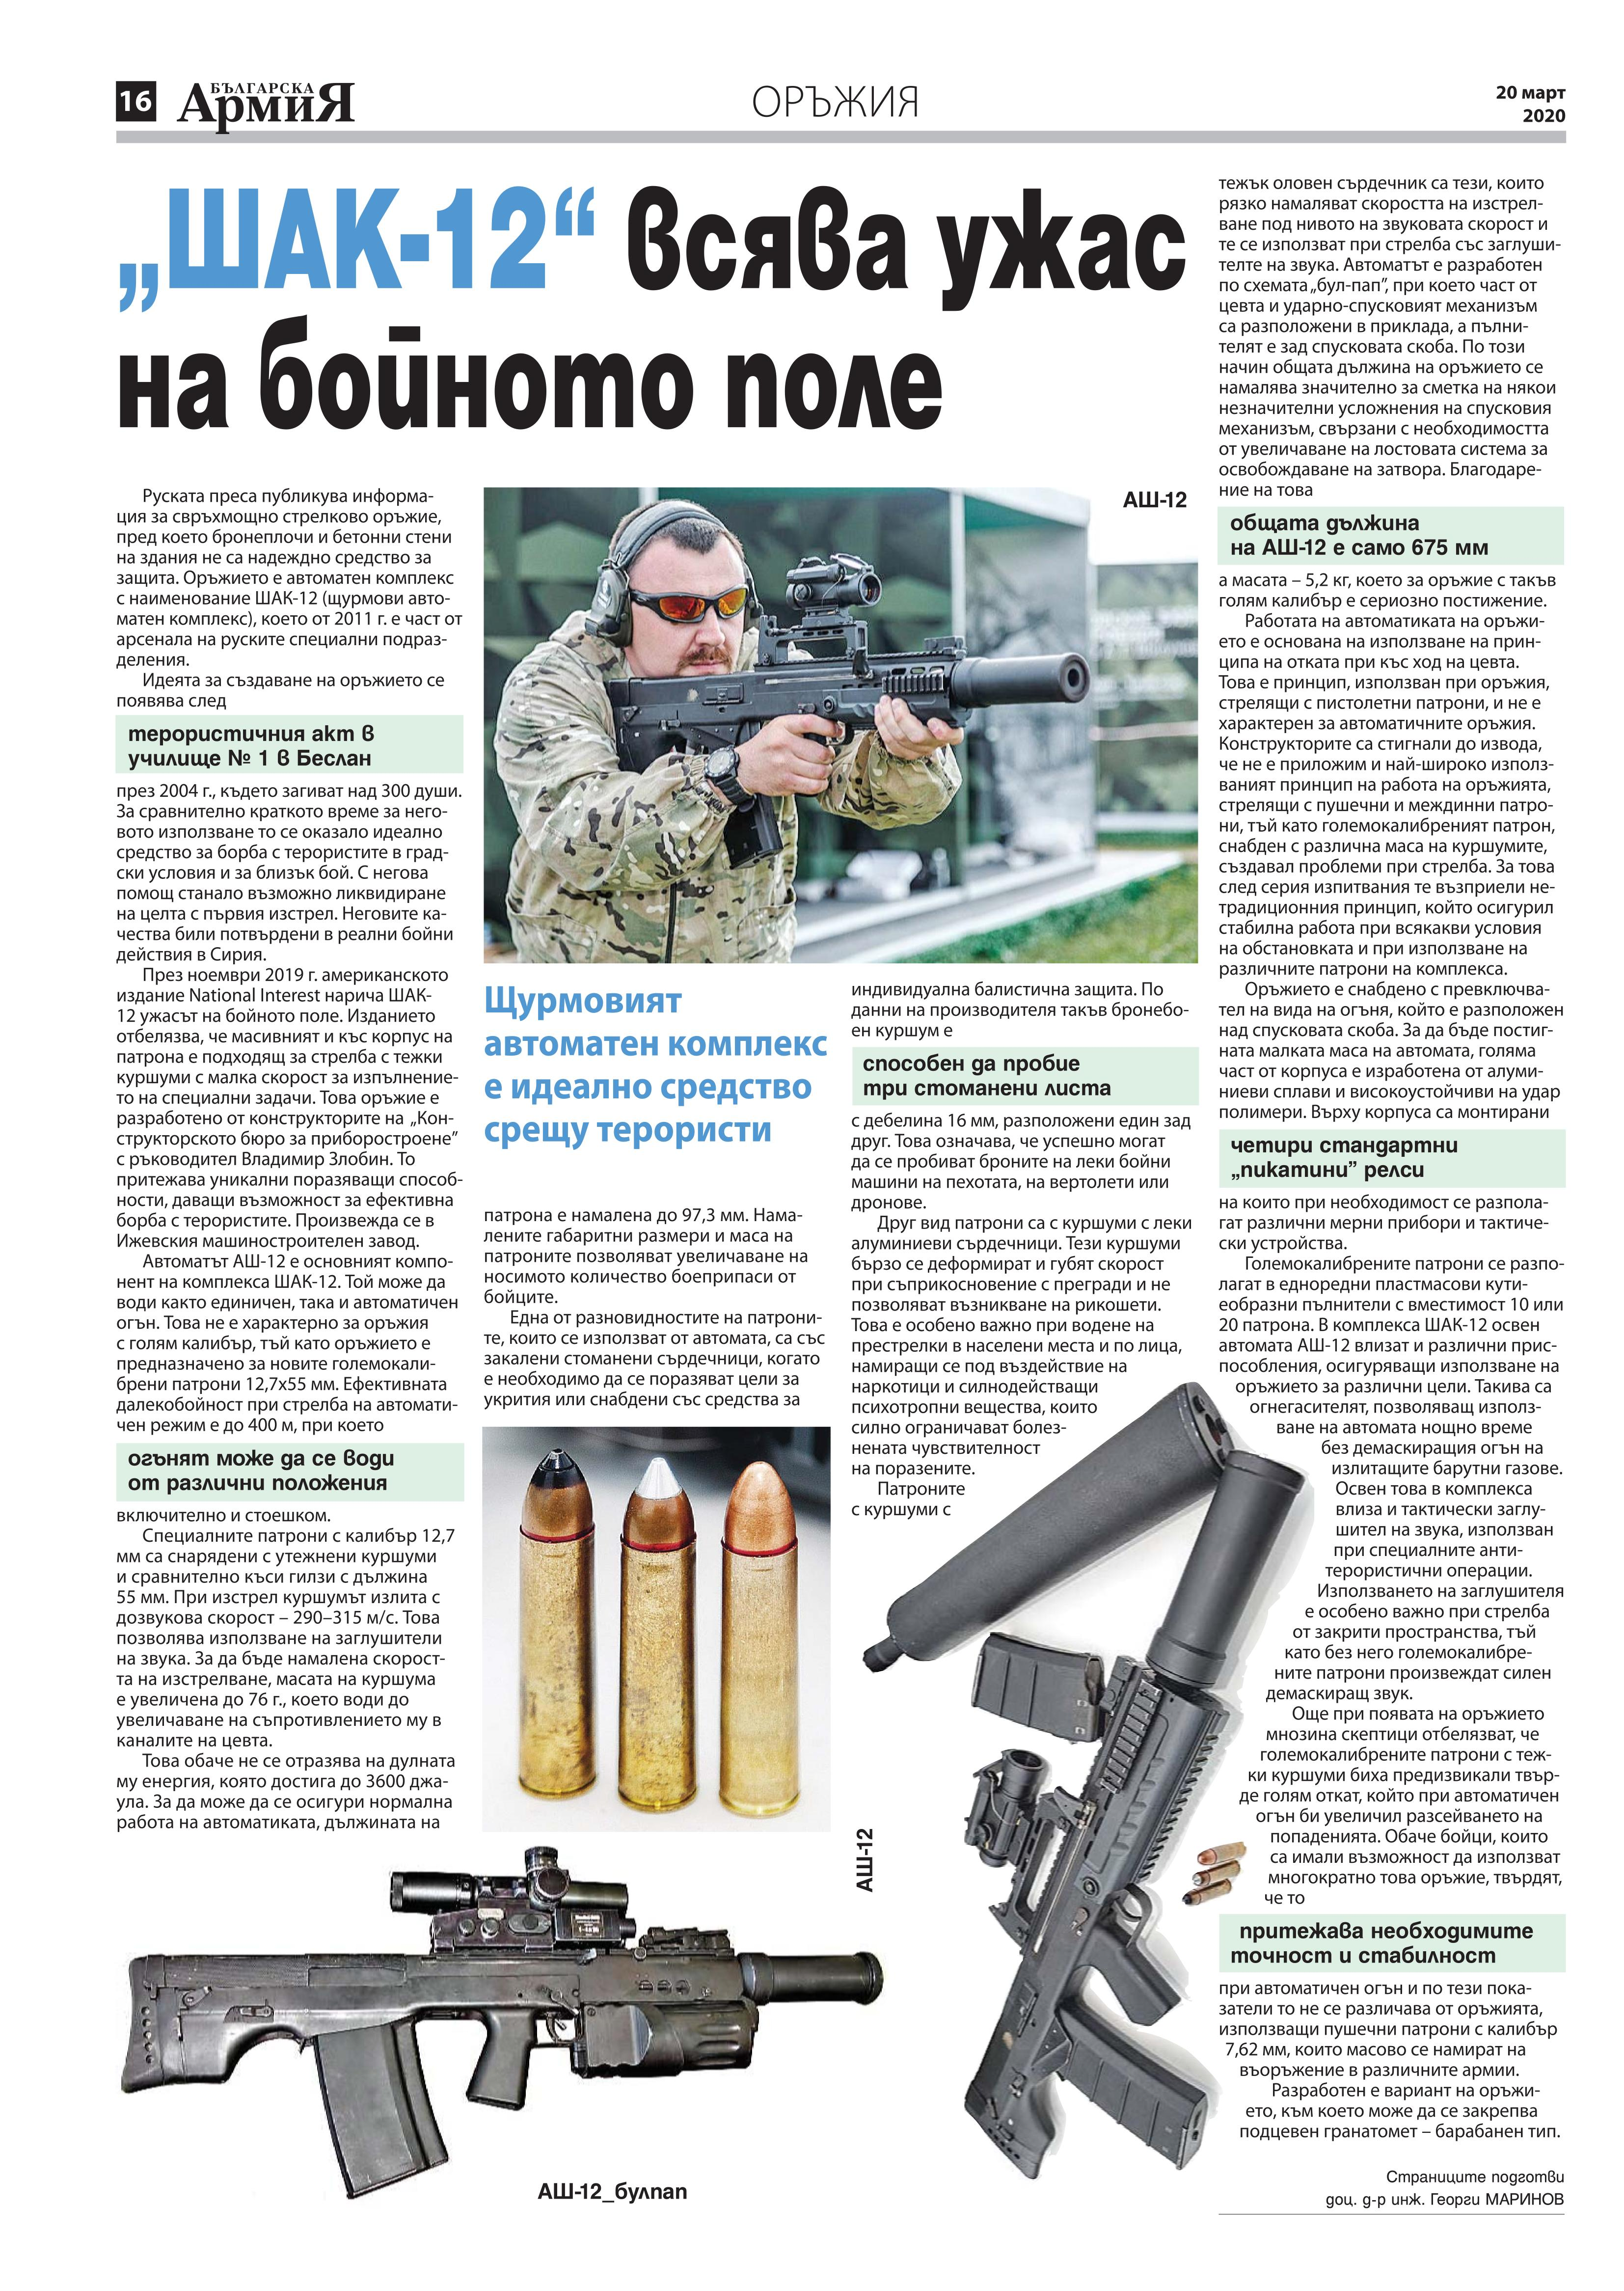 https://www.armymedia.bg/wp-content/uploads/2015/06/16.page1_-131.jpg